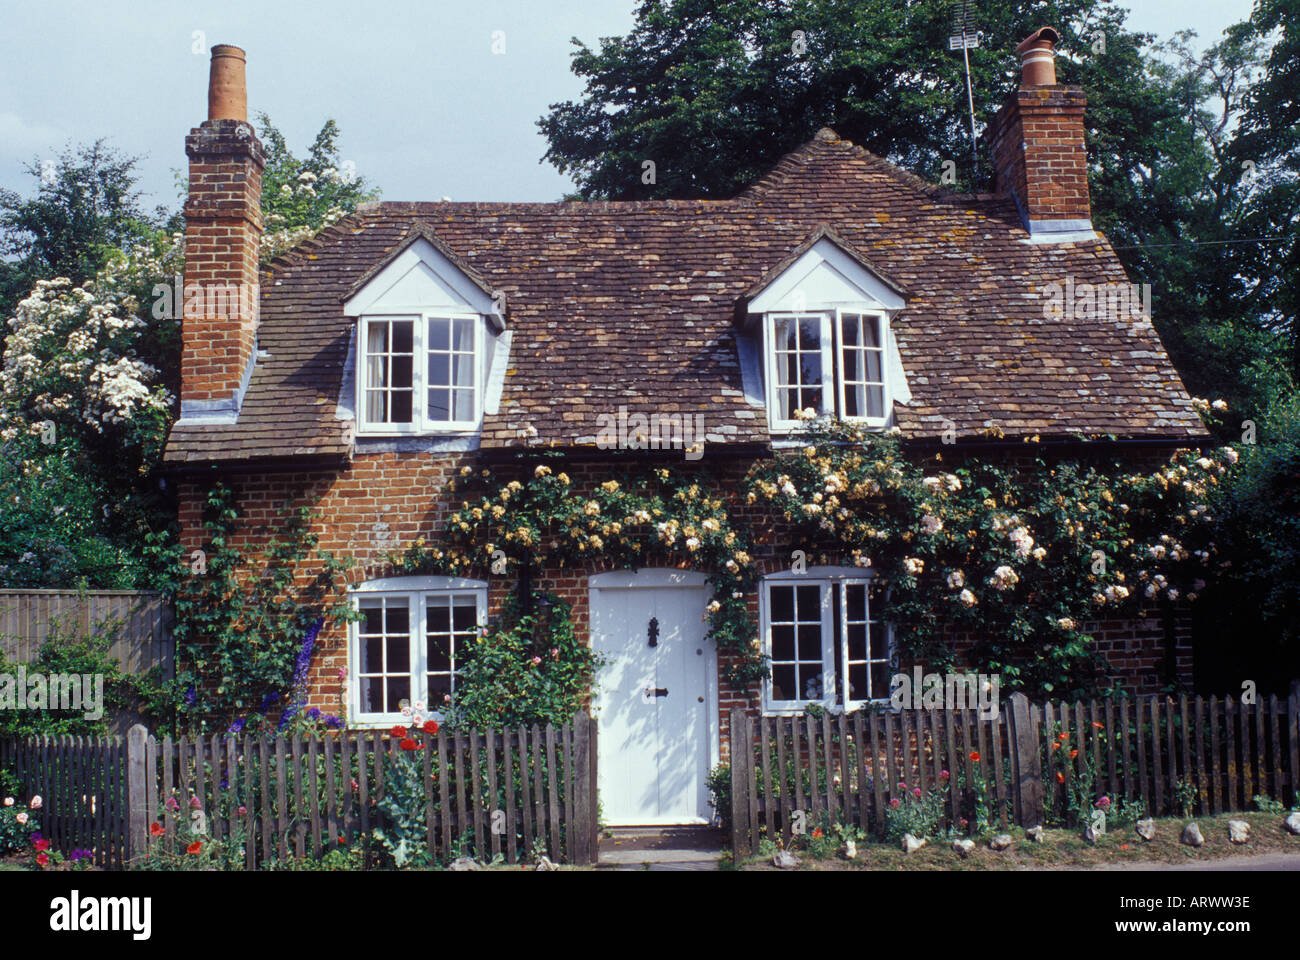 Traditional Brick Country Cottage With Dormer Windows Tile